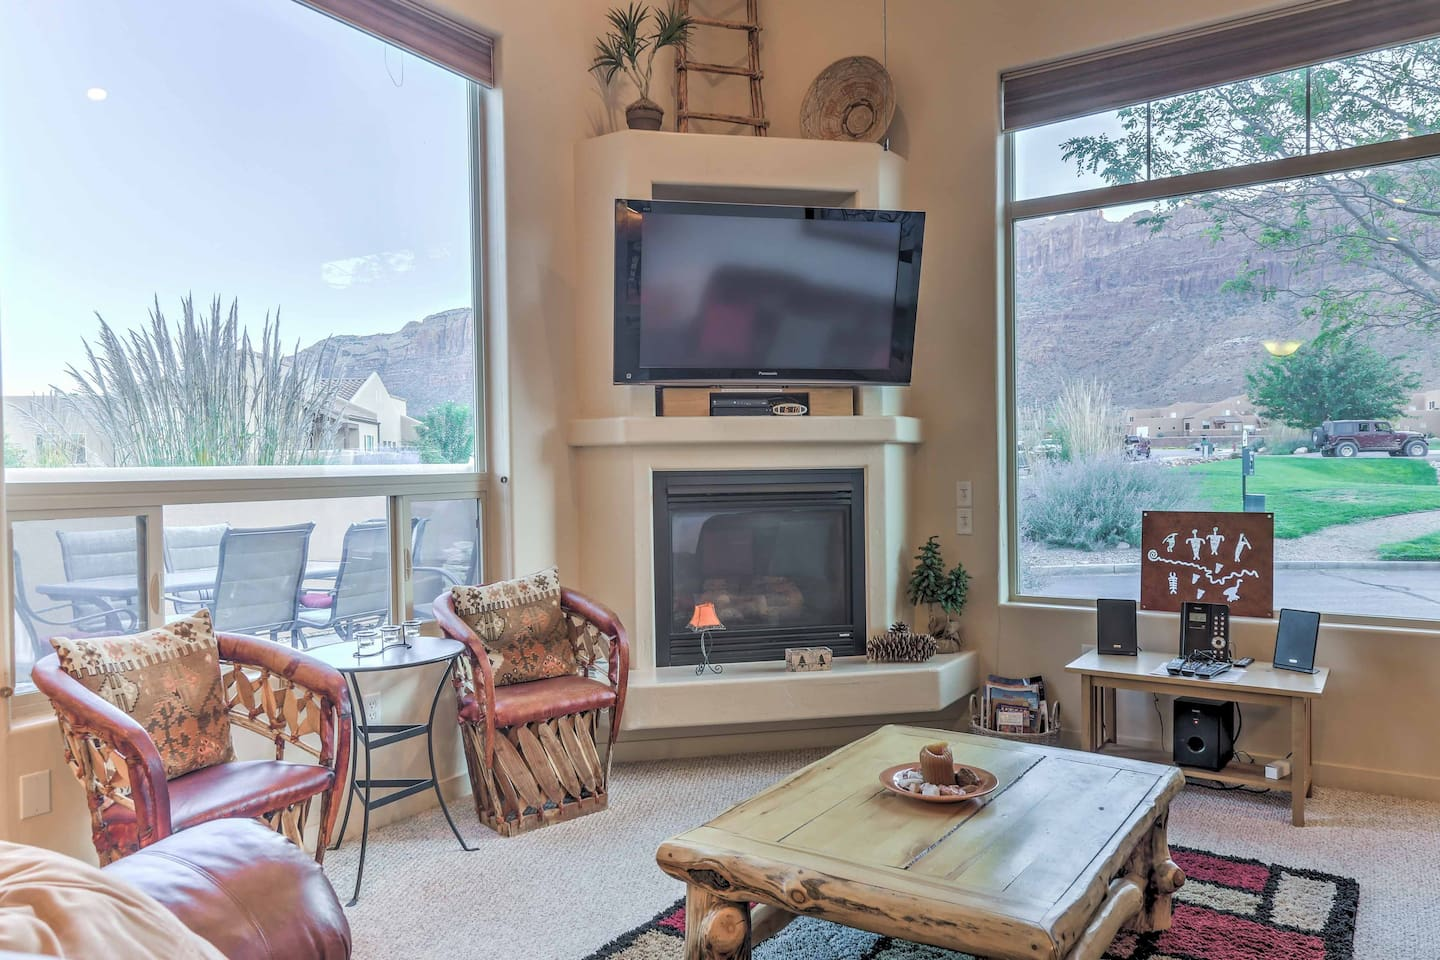 Kick back in the living room for mountain views through the large windows.